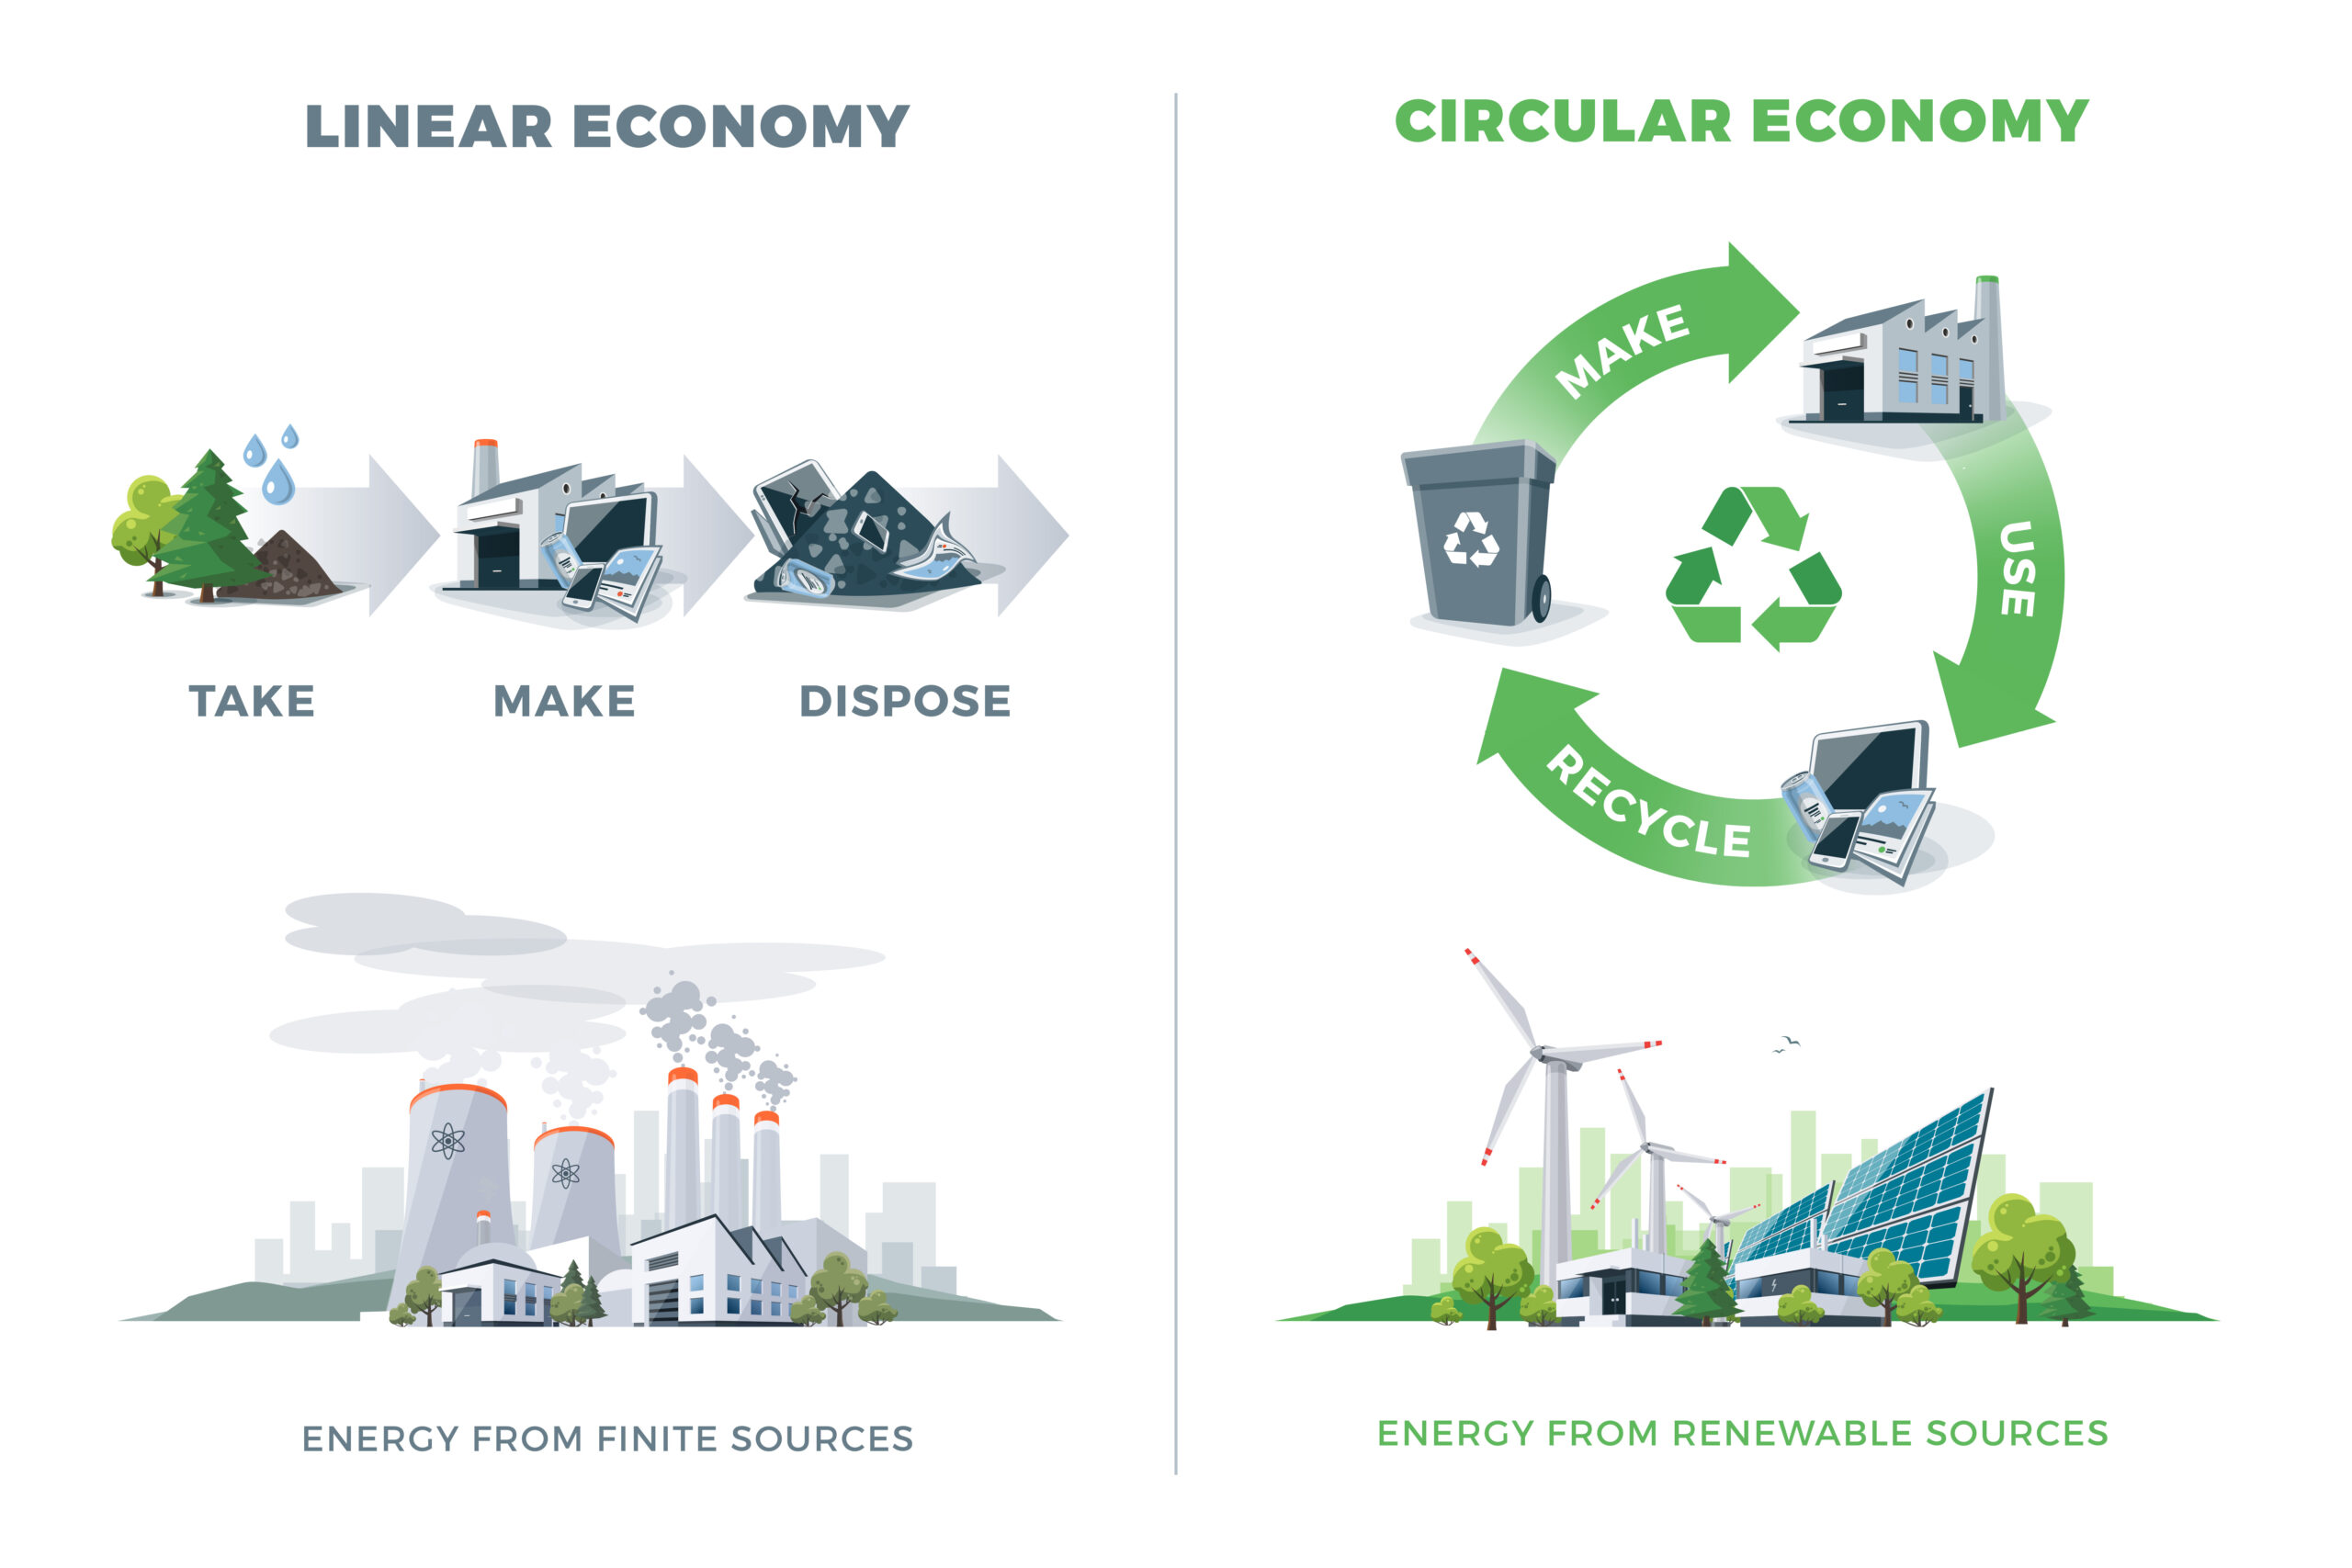 An infographic comparing a linear economy versus a green circular economy.